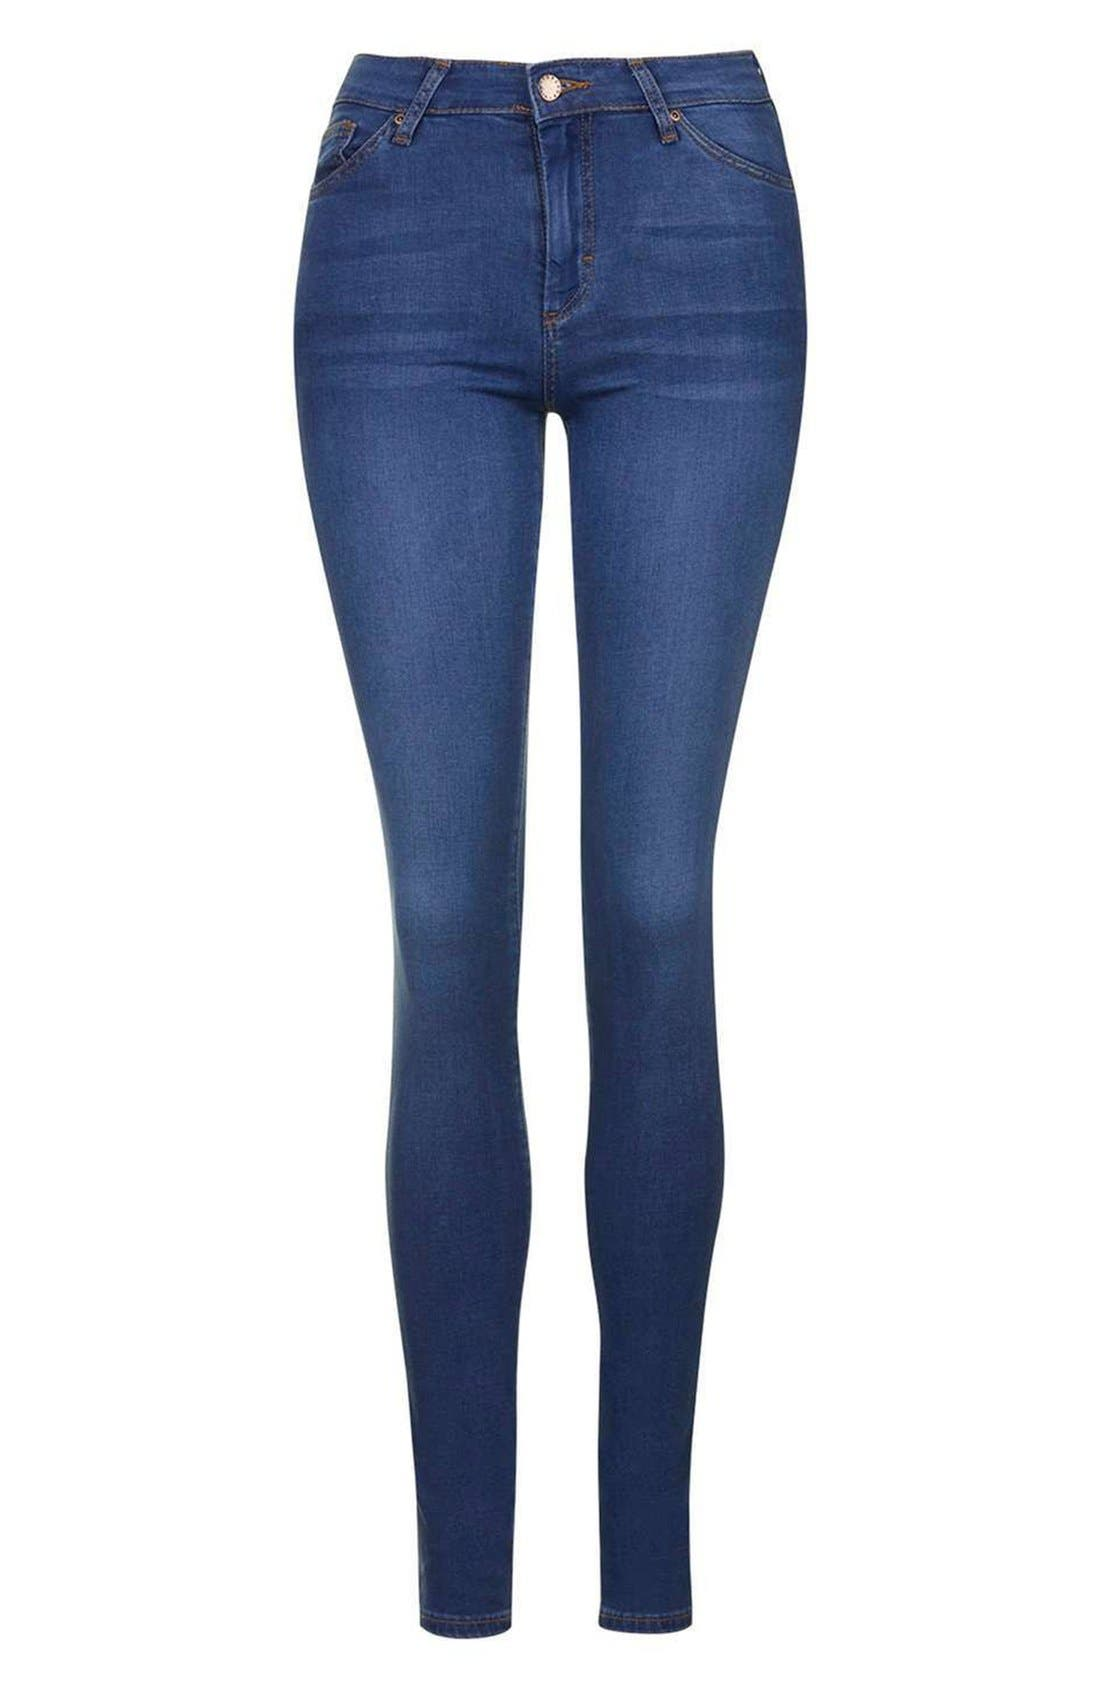 'Leigh' Ankle Skinny Jeans,                             Alternate thumbnail 3, color,                             400